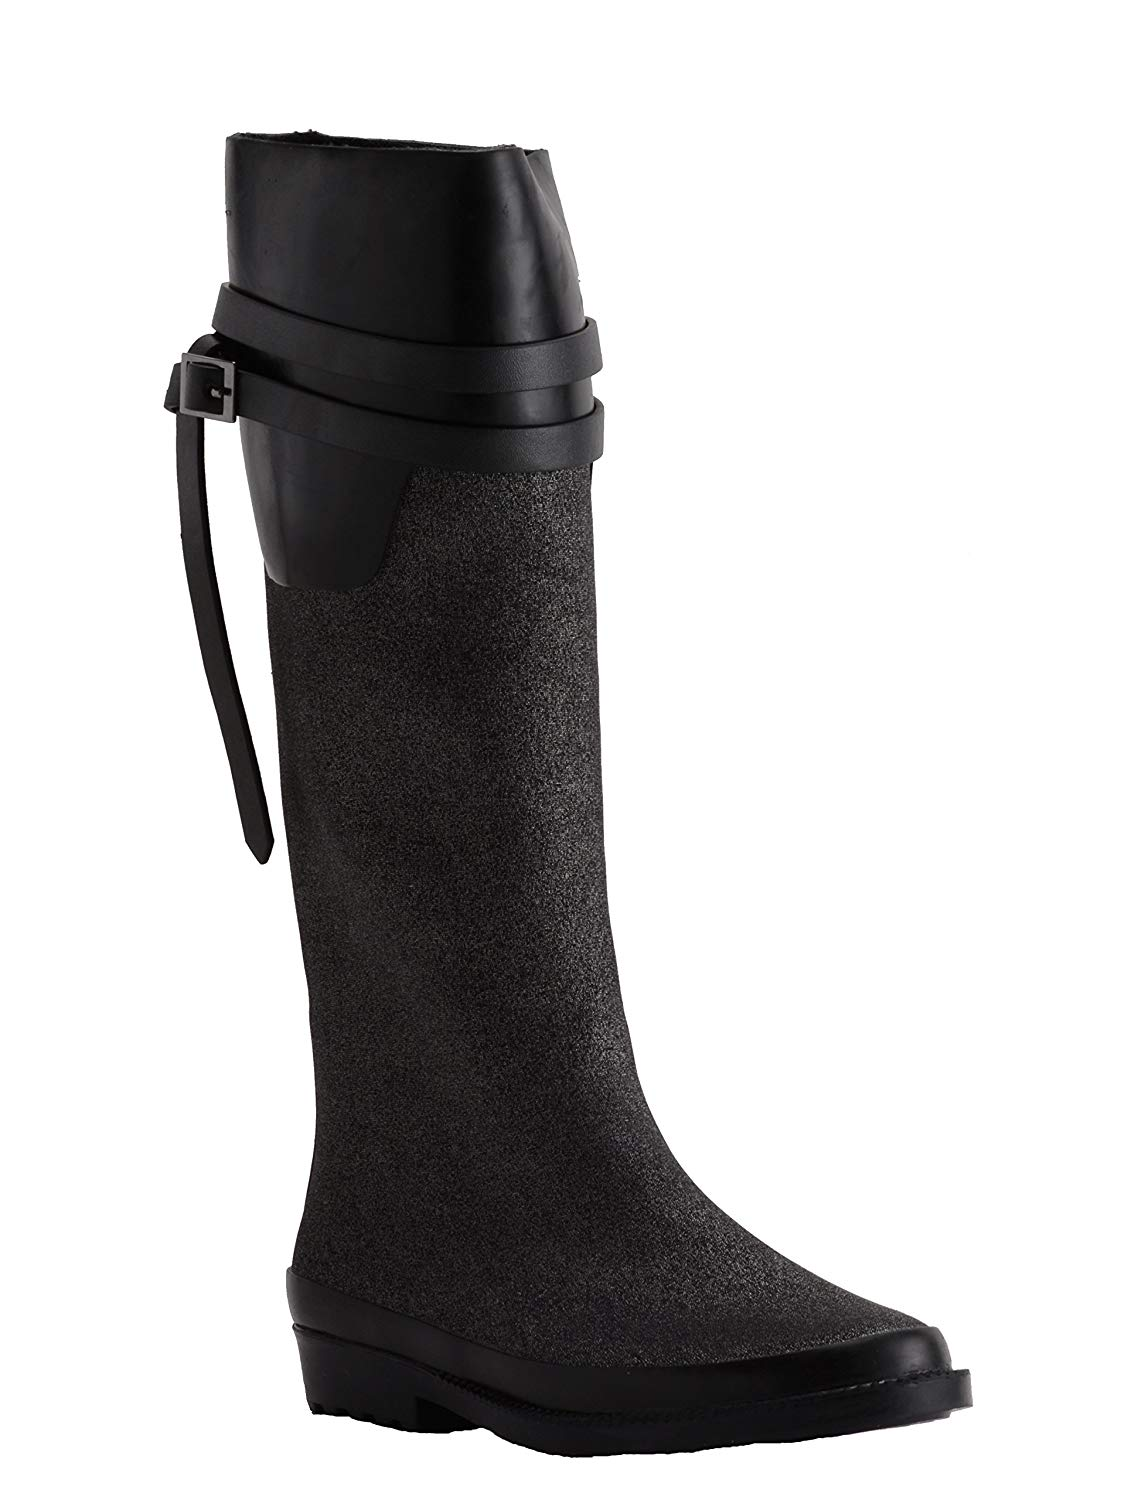 870aac857c6 Get Quotations · Henry Ferrera Womens Ambiance-100 Tall Rain Boots Pewter